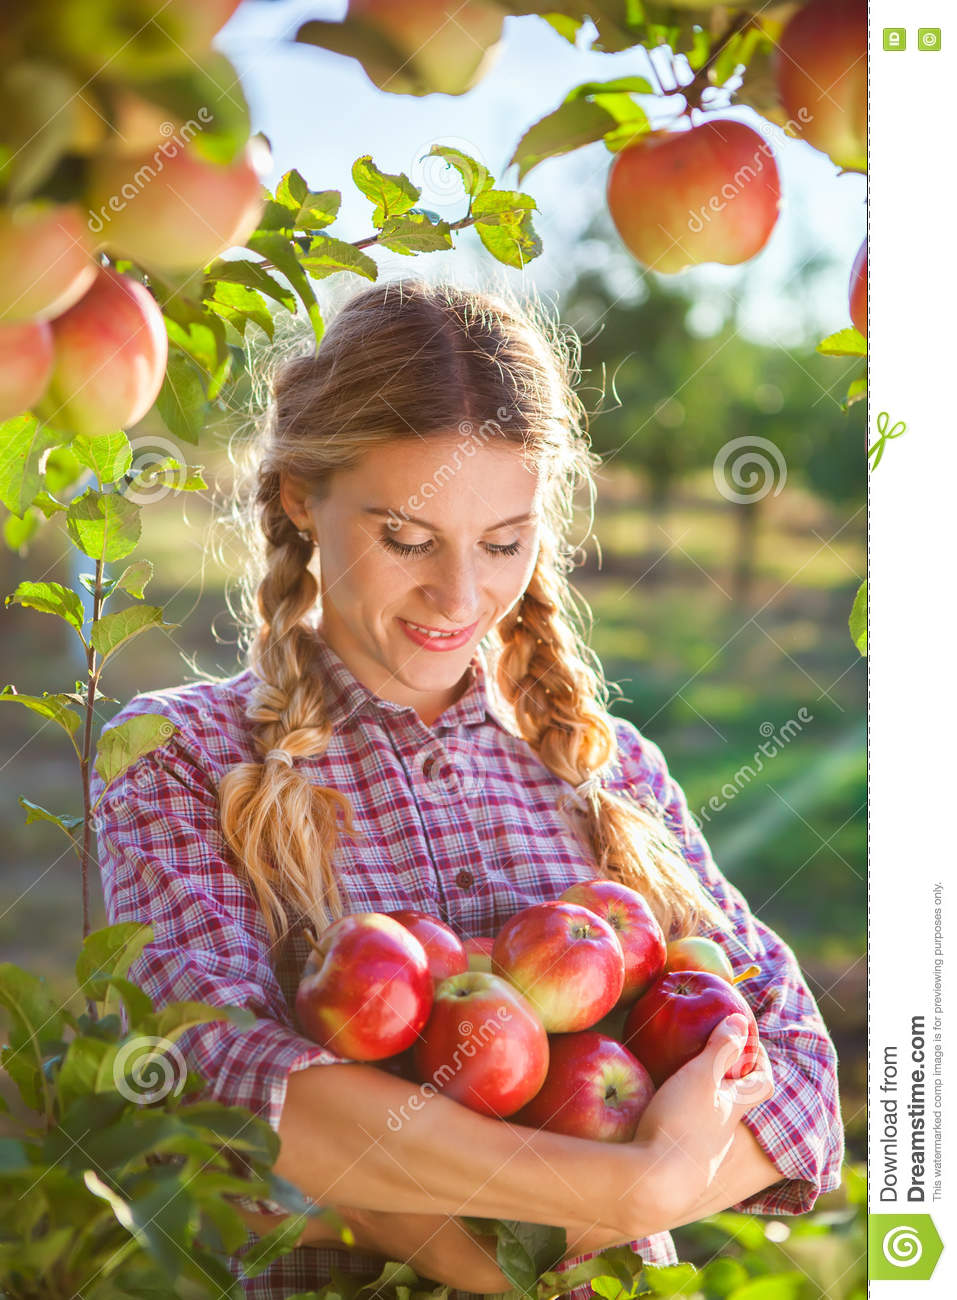 young woman picking apples from apple tree on a lovely